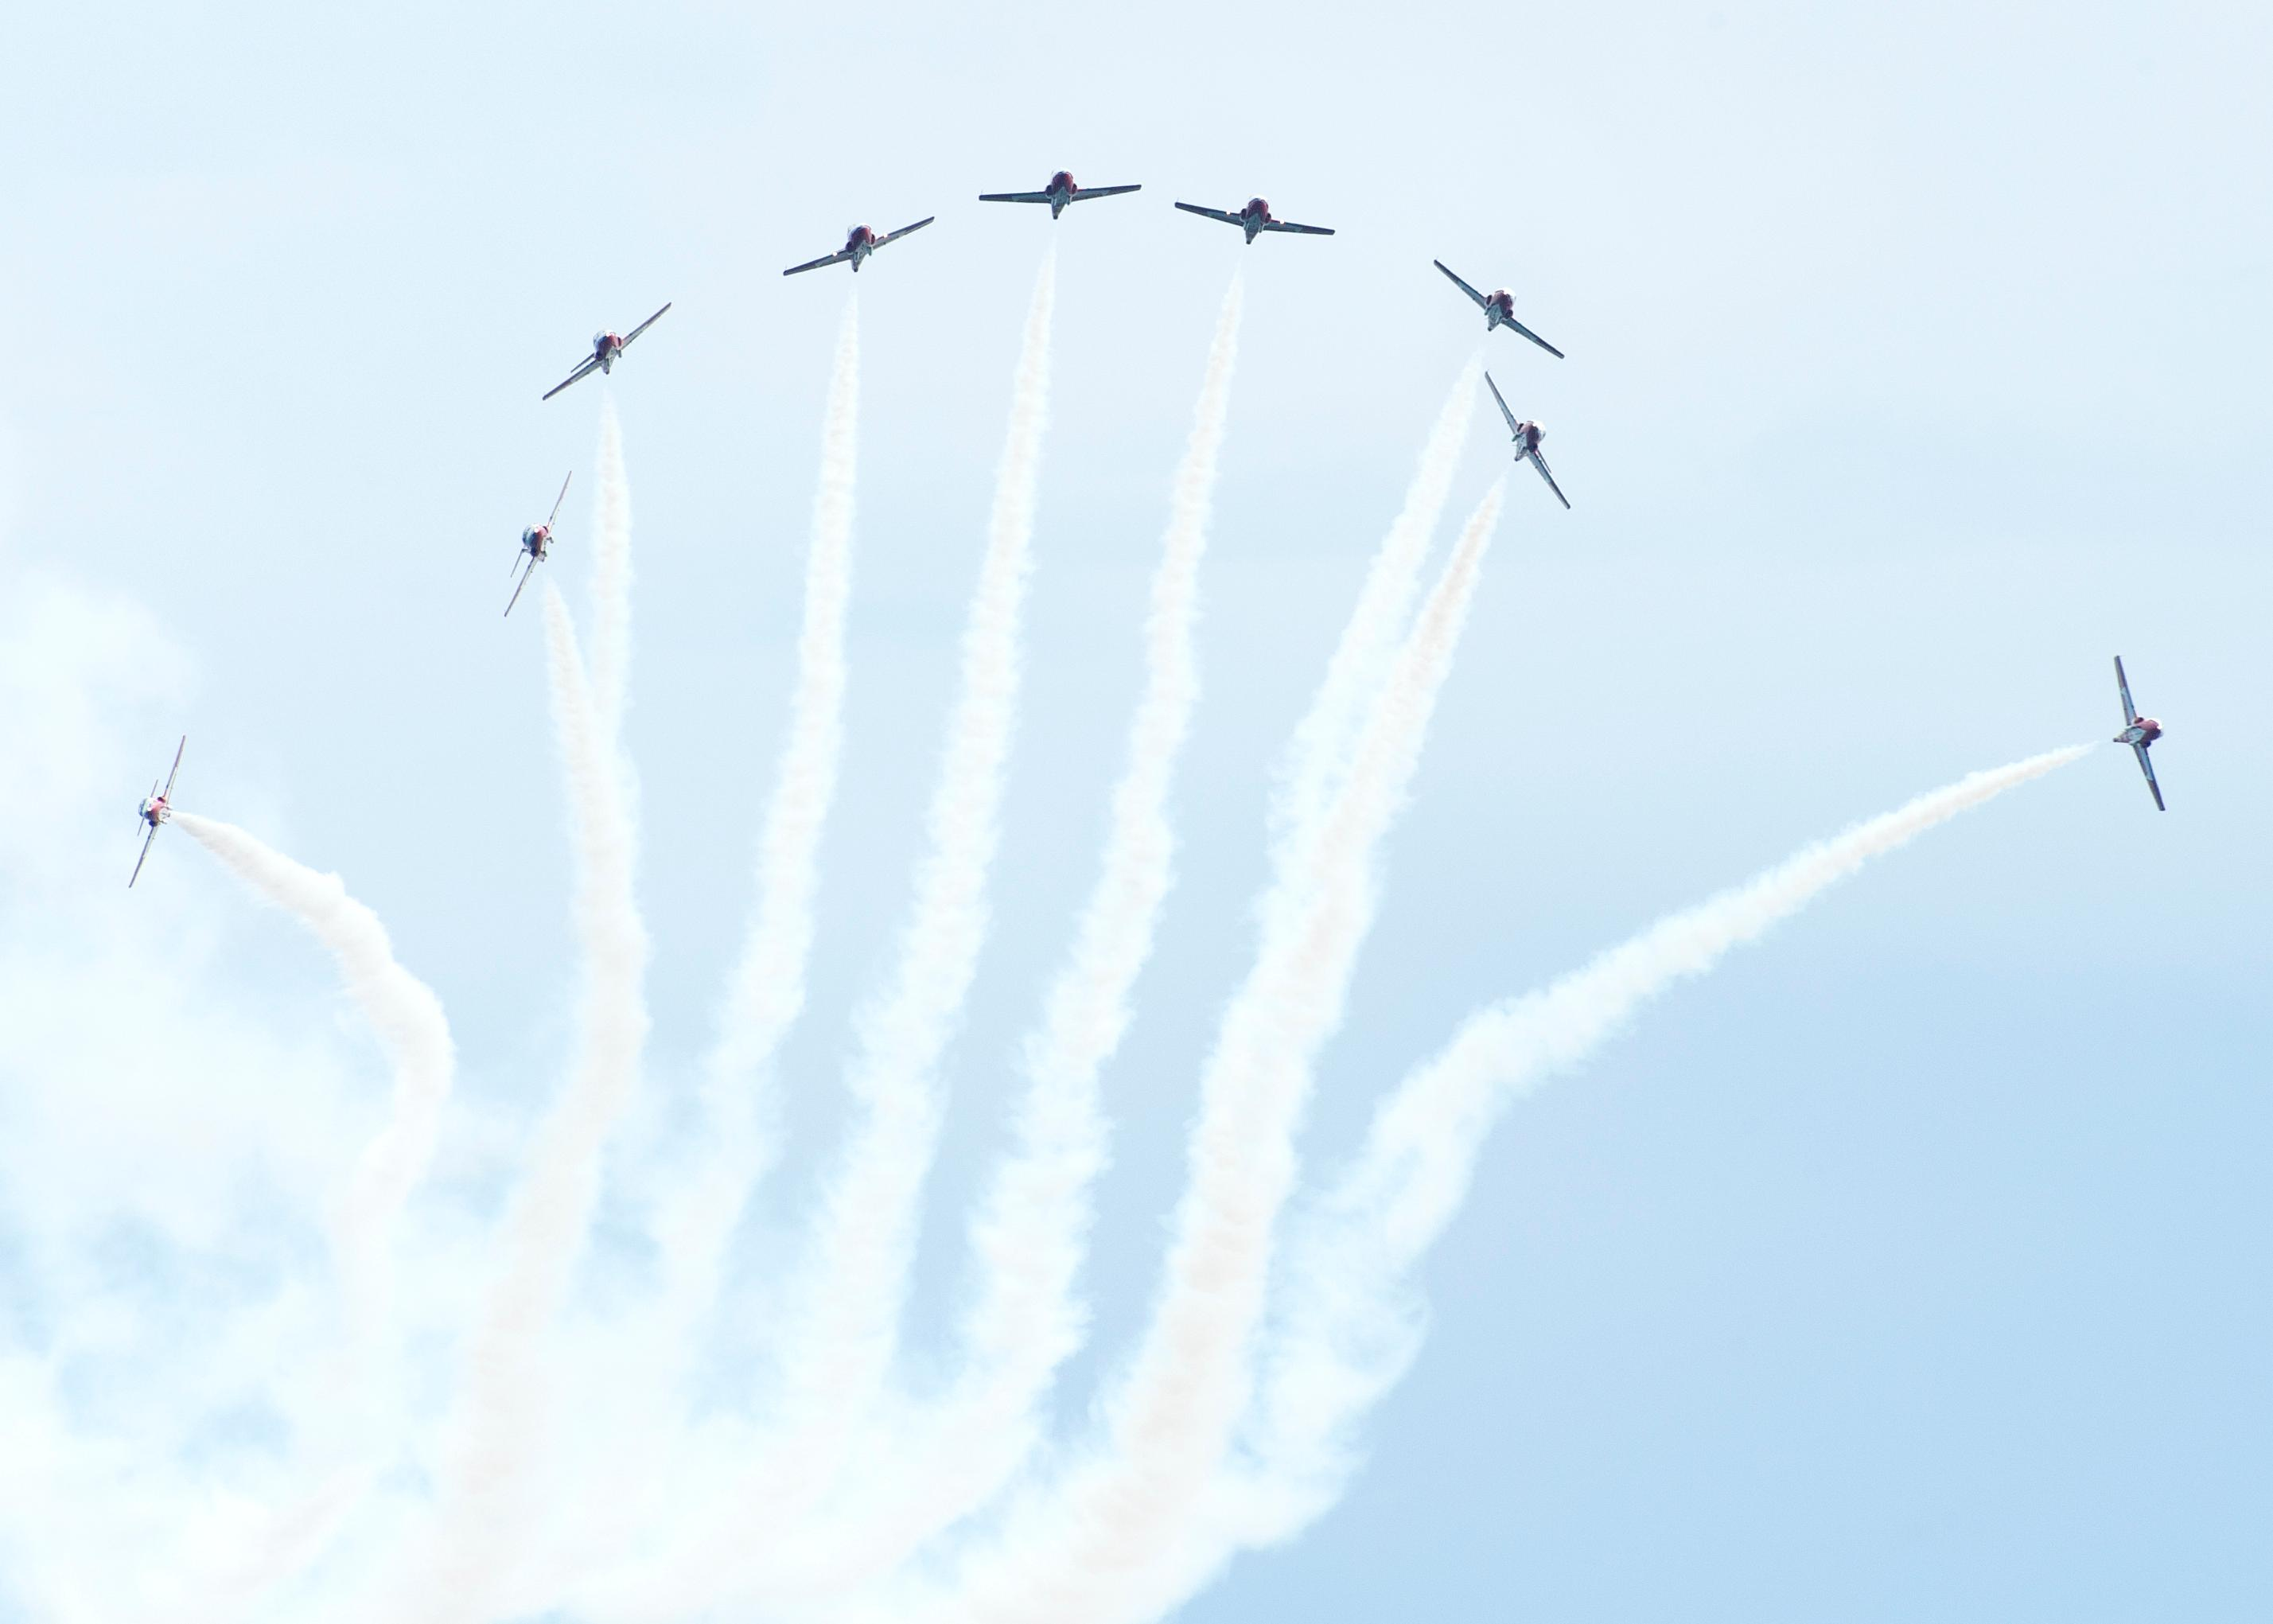 CX2015-0110-41The Canadian Armed Forces Snowbirds (431 Air Demonstration Squadron) perform over 19 Wing Comox during the acceptance show.The Canadian Armed Forces (CAF) Snowbirds (431 Air Demonstration Squadron) and The CAF CF-188 Hornet Demonstration Team are deployed to 19 Wing Comox, British Columbia, to complete training prior to the start of the 2015 Air Show season from the 15 to the 30 April 2015.Image: Sgt Halina Folfas, 19 Wing ImagingCX2015-0110-41Des avions Snowbird des Forces armes canadiennes effectuent des manuvres au-dessus de la 19e Escadre Comox lors du spectacle dinauguration.Les Snowbirds (431e Escadron de dmonstration arienne) des Forces armes canadiennes (FAC) et l?quipe de dmonstration de chasseurs CF188 Hornet sont dploys  la 19e Escadre Comox (Colombie-Britannique) pour effectuer une sance dentranement avant le dbut de la saison des spectacles ariens 2015, qui aura lieu du 15 au 30 avril 2015.Image: Sgt Halina Folfas, Imagerie de la 19e Escadre